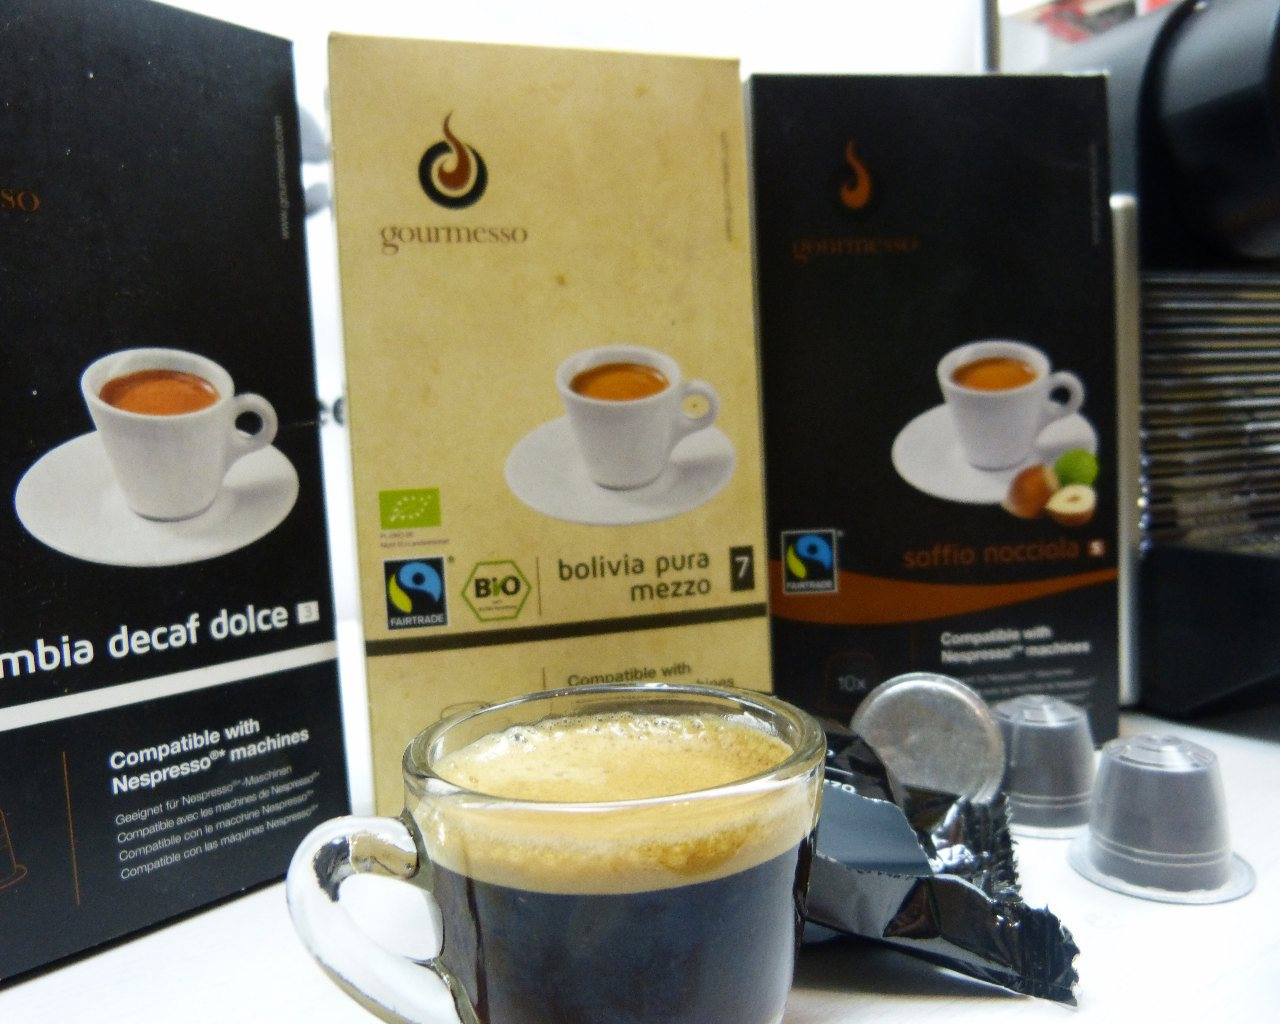 gourmesso kaffeekapseln im test kompatibel mit nespresso025 kapsel. Black Bedroom Furniture Sets. Home Design Ideas